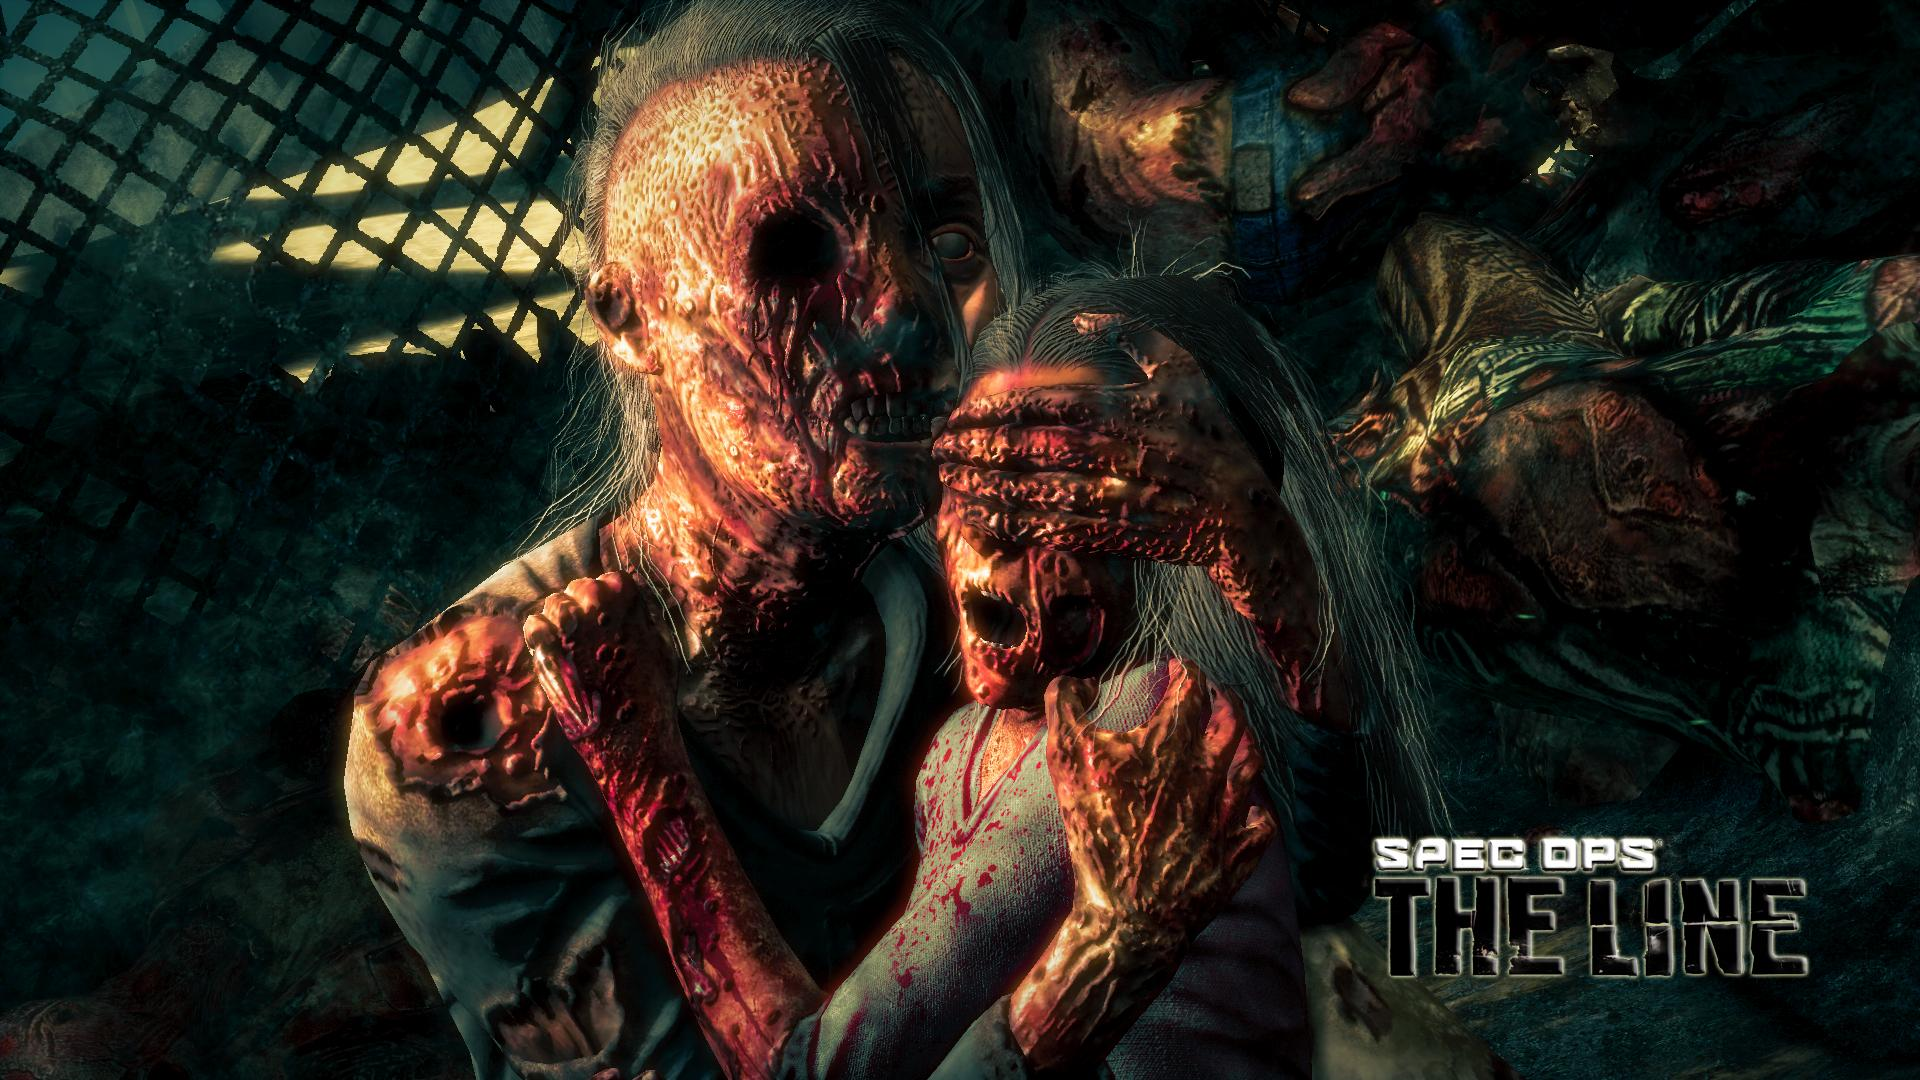 Hd wallpaper zombie - Zombies Wallpaper Hd 1920x1080 Pixel Popular Hd Wallpaper 27007